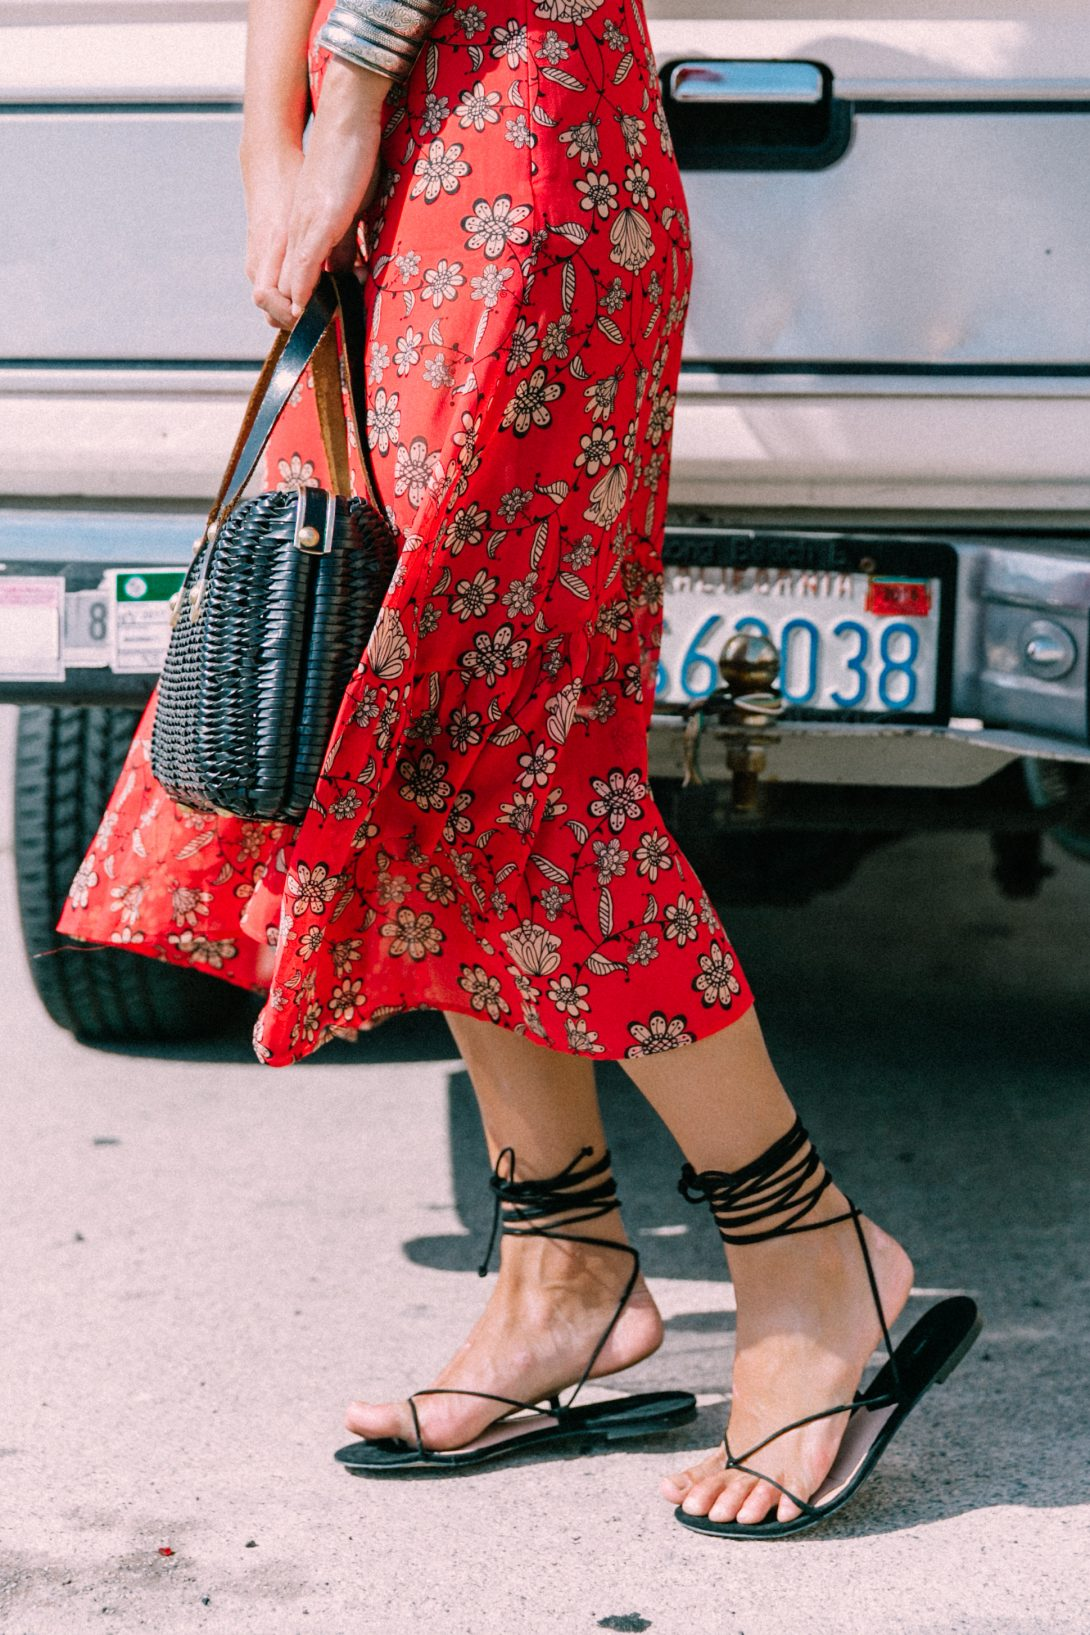 For_Love_And_Lemons-Raffia_Basket-Vintage-Cropped_Top-Midi_Skirt-Lace_Up_Sandals-Revolve_Clothing-Outfit-Collage_Vintage--10